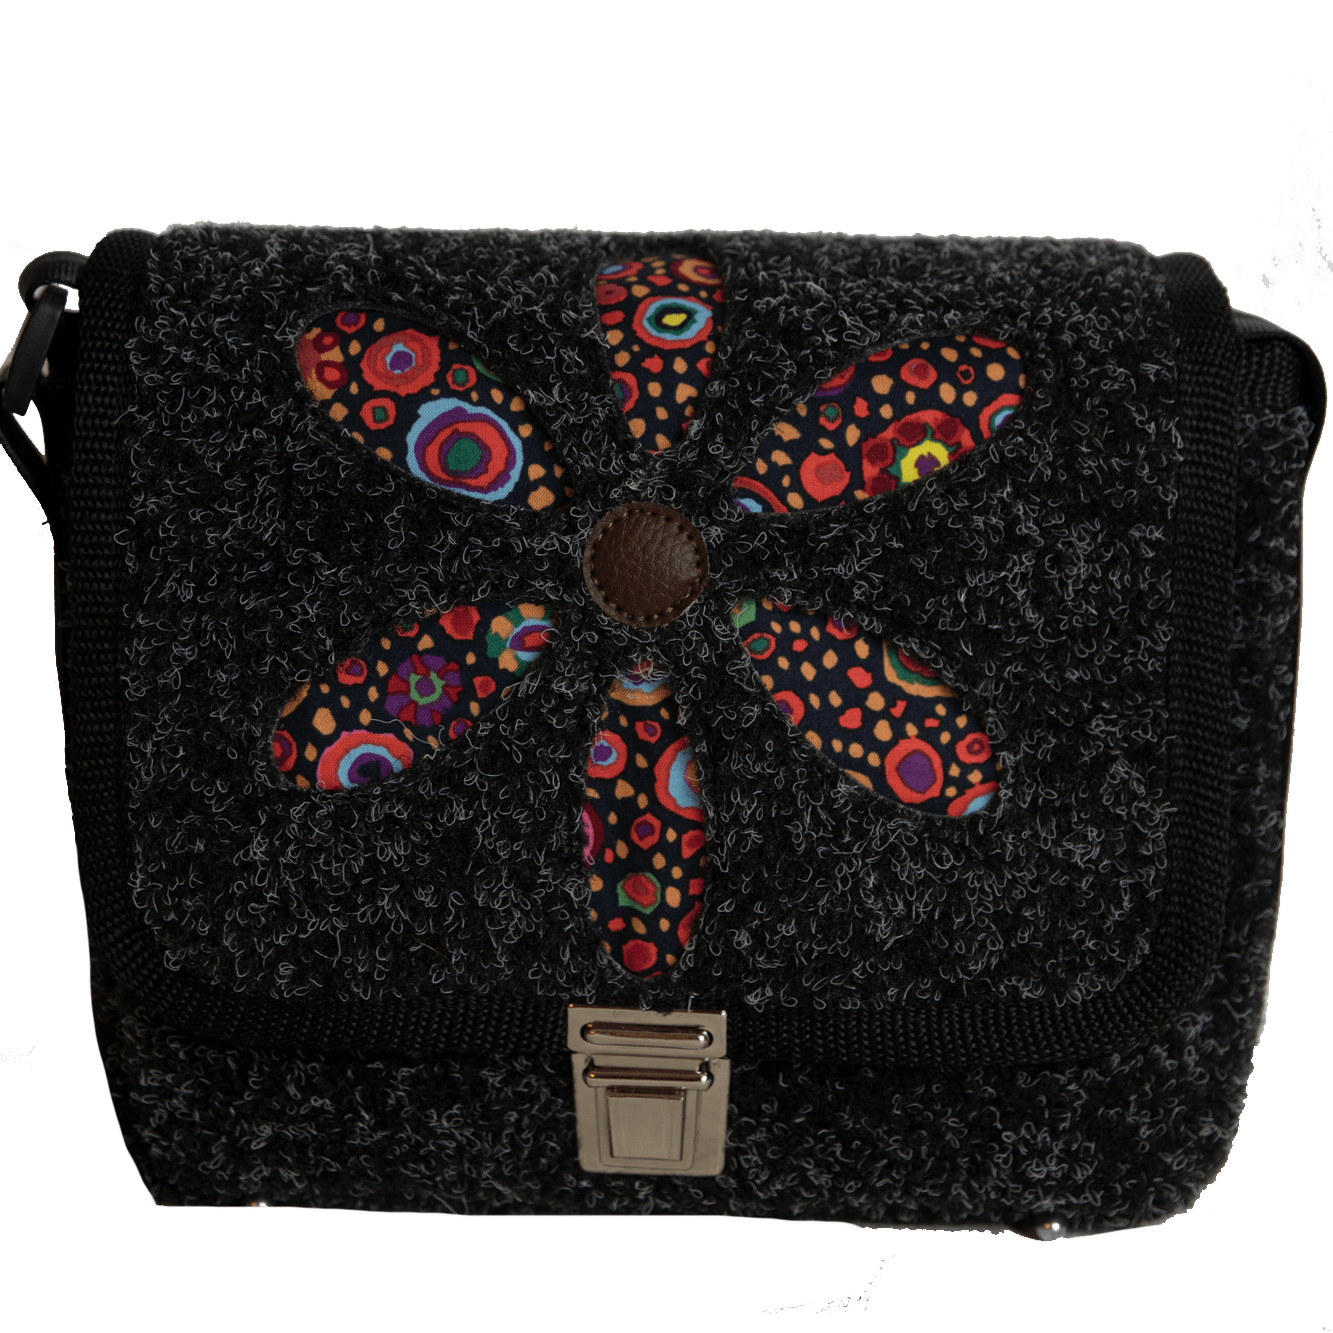 XS BAG Retroflower Black